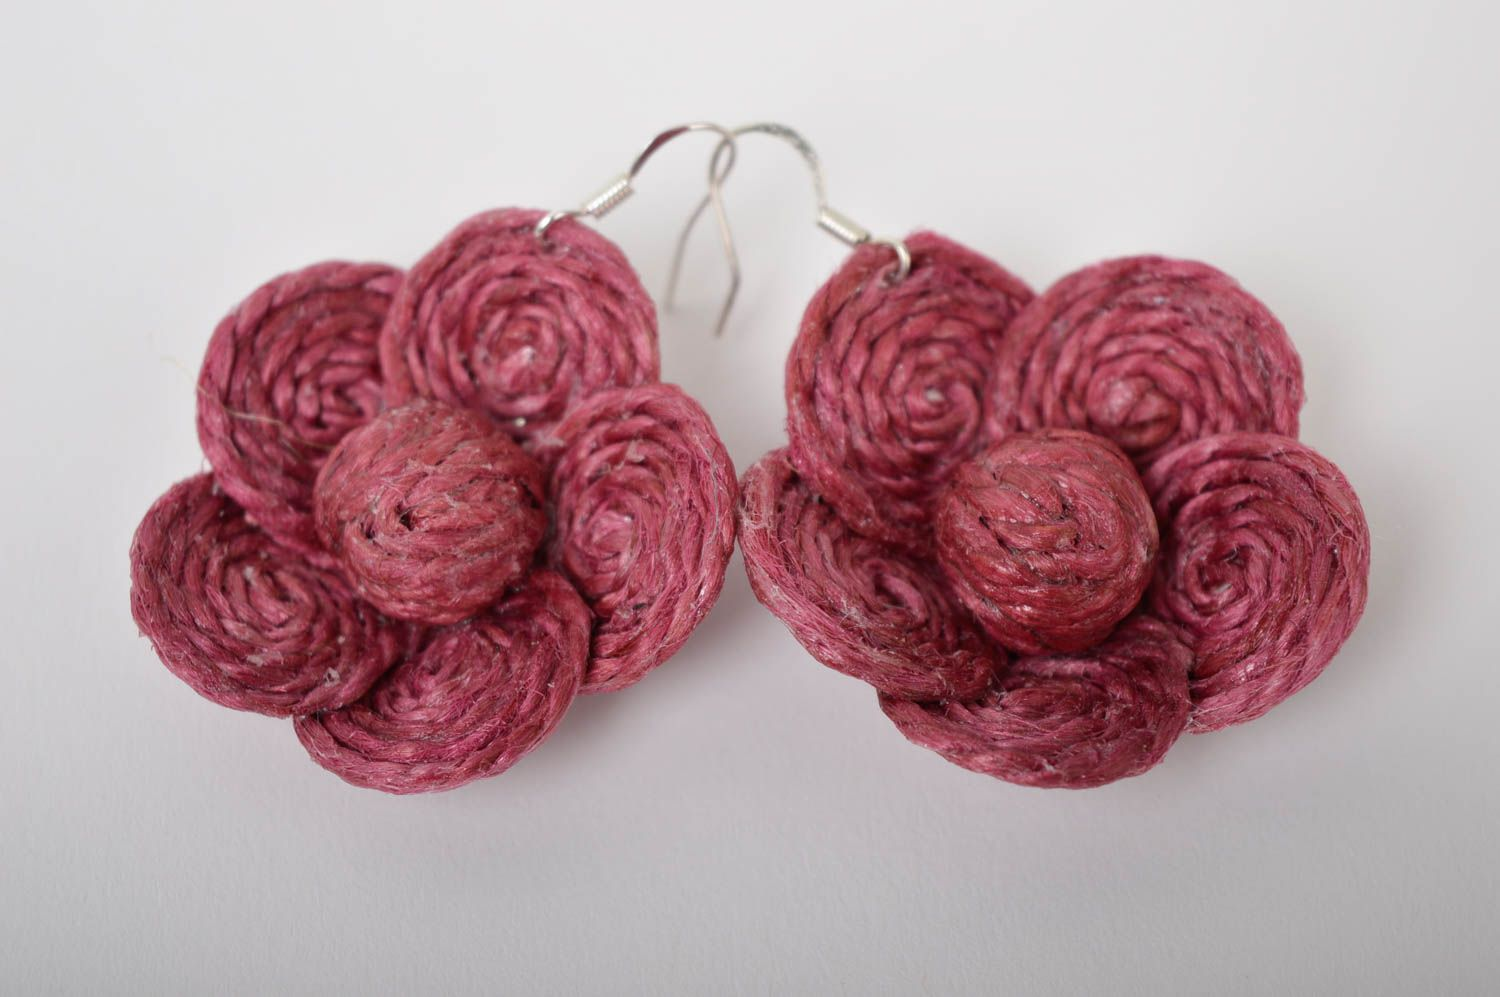 Unusual handmade flower earrings beautiful cord earrings jewelry designs photo 4